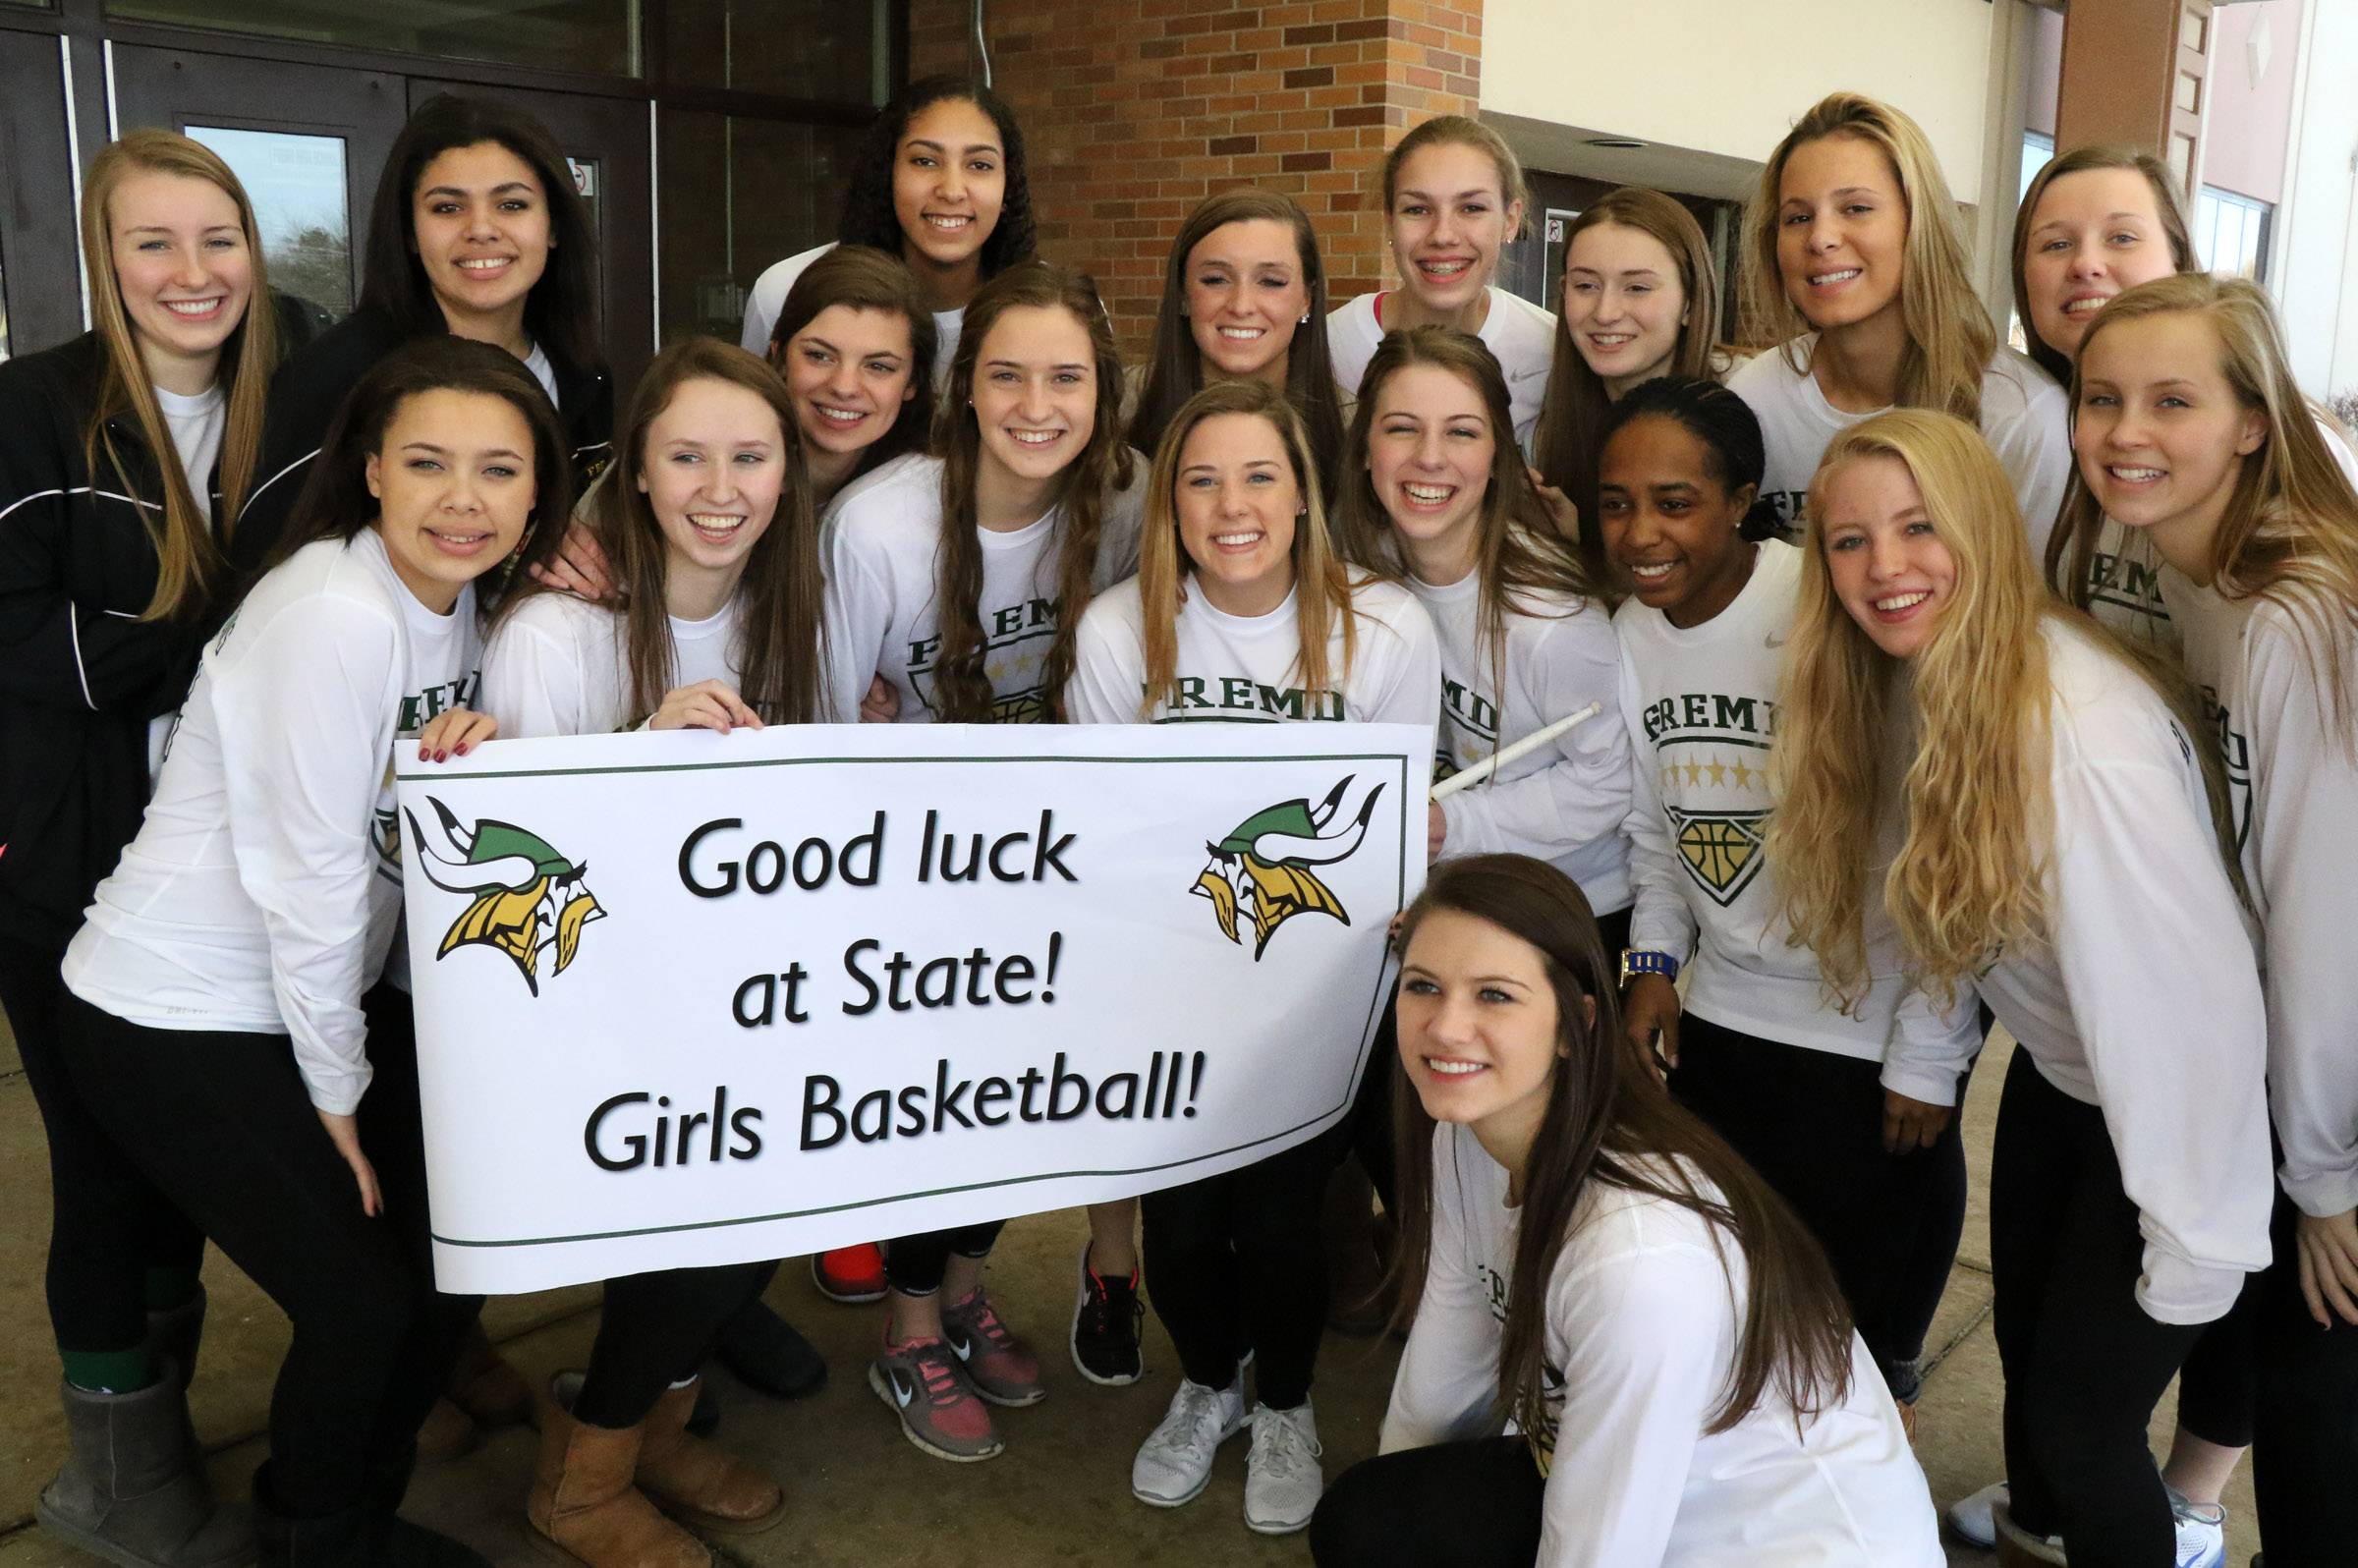 The Fremd High School girls' basketball team poses outside the Palatine school after they got a big send-off to the state tournament on Wednesday. The girls depart on Thursday.